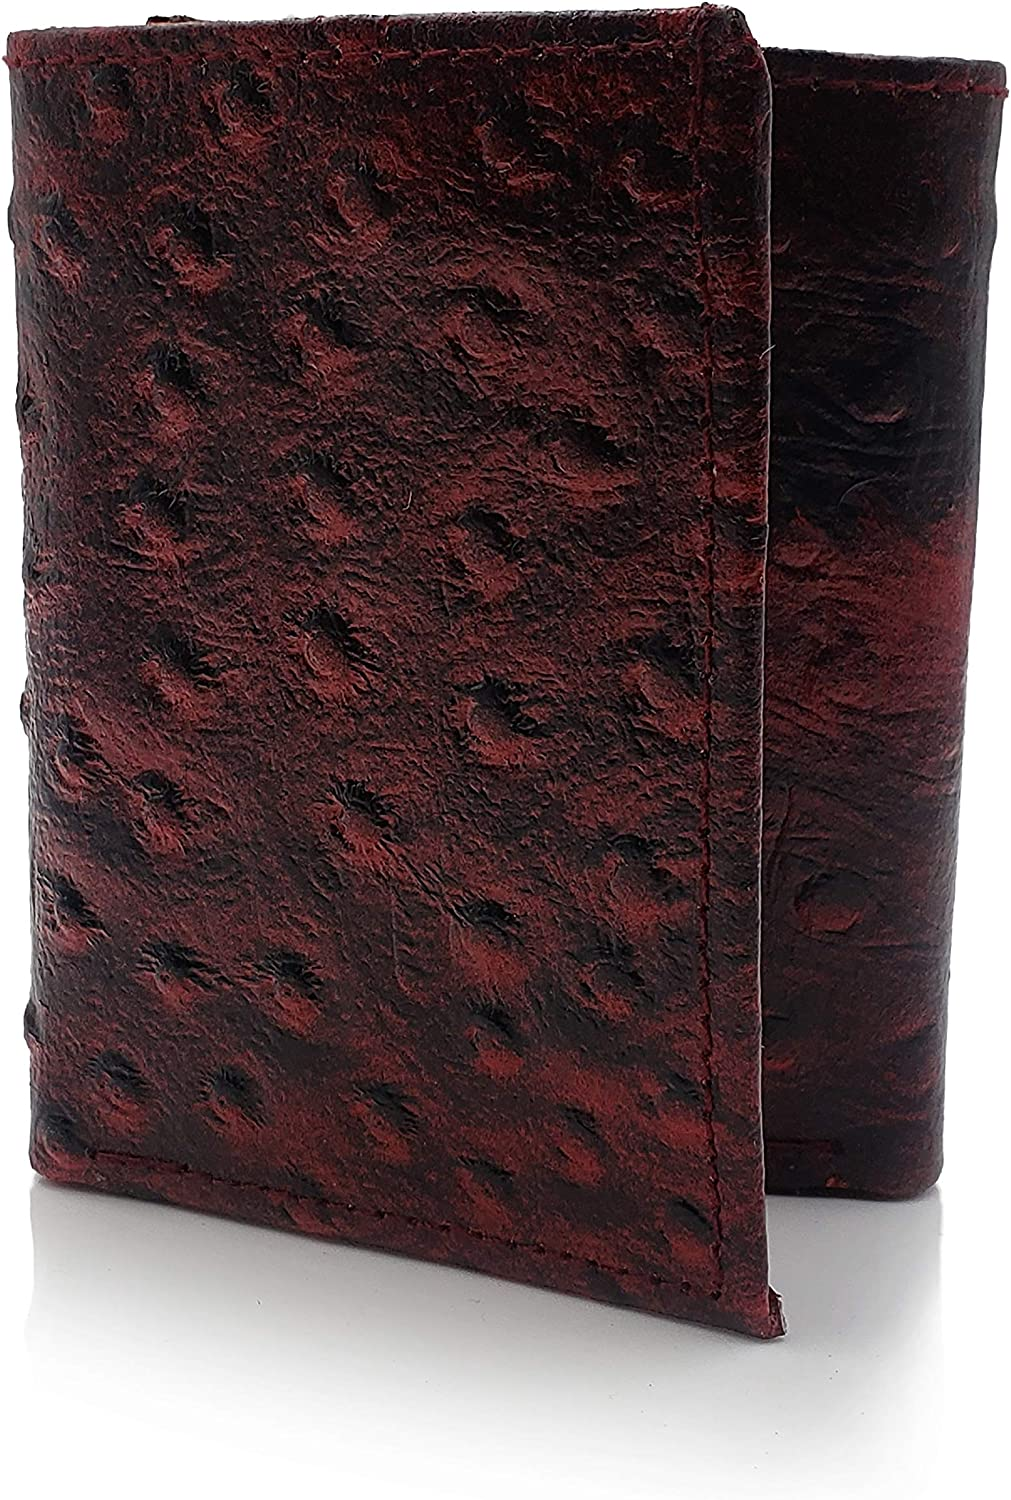 AG Wallets Genuine Leather Men's Ostrich Skin Embossed Trifold Wallet (Red)